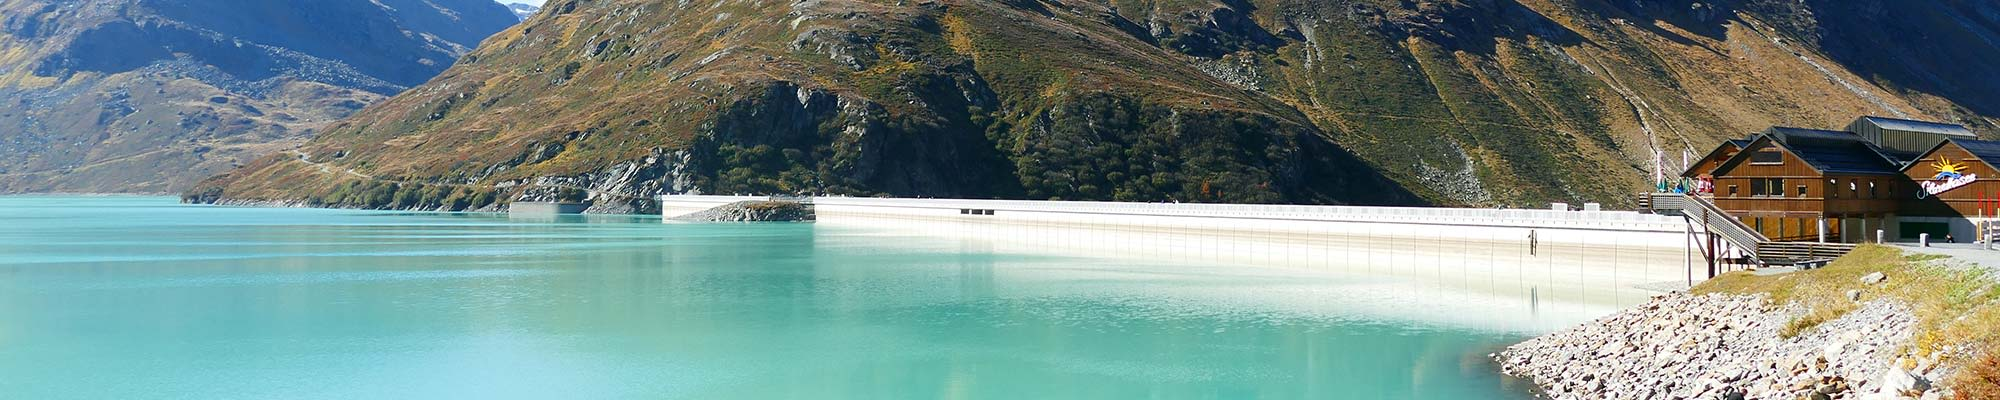 Dam Monitoring - Water Level Stand-Alone Measurement Instruments for Monitoring Dam Water-Level